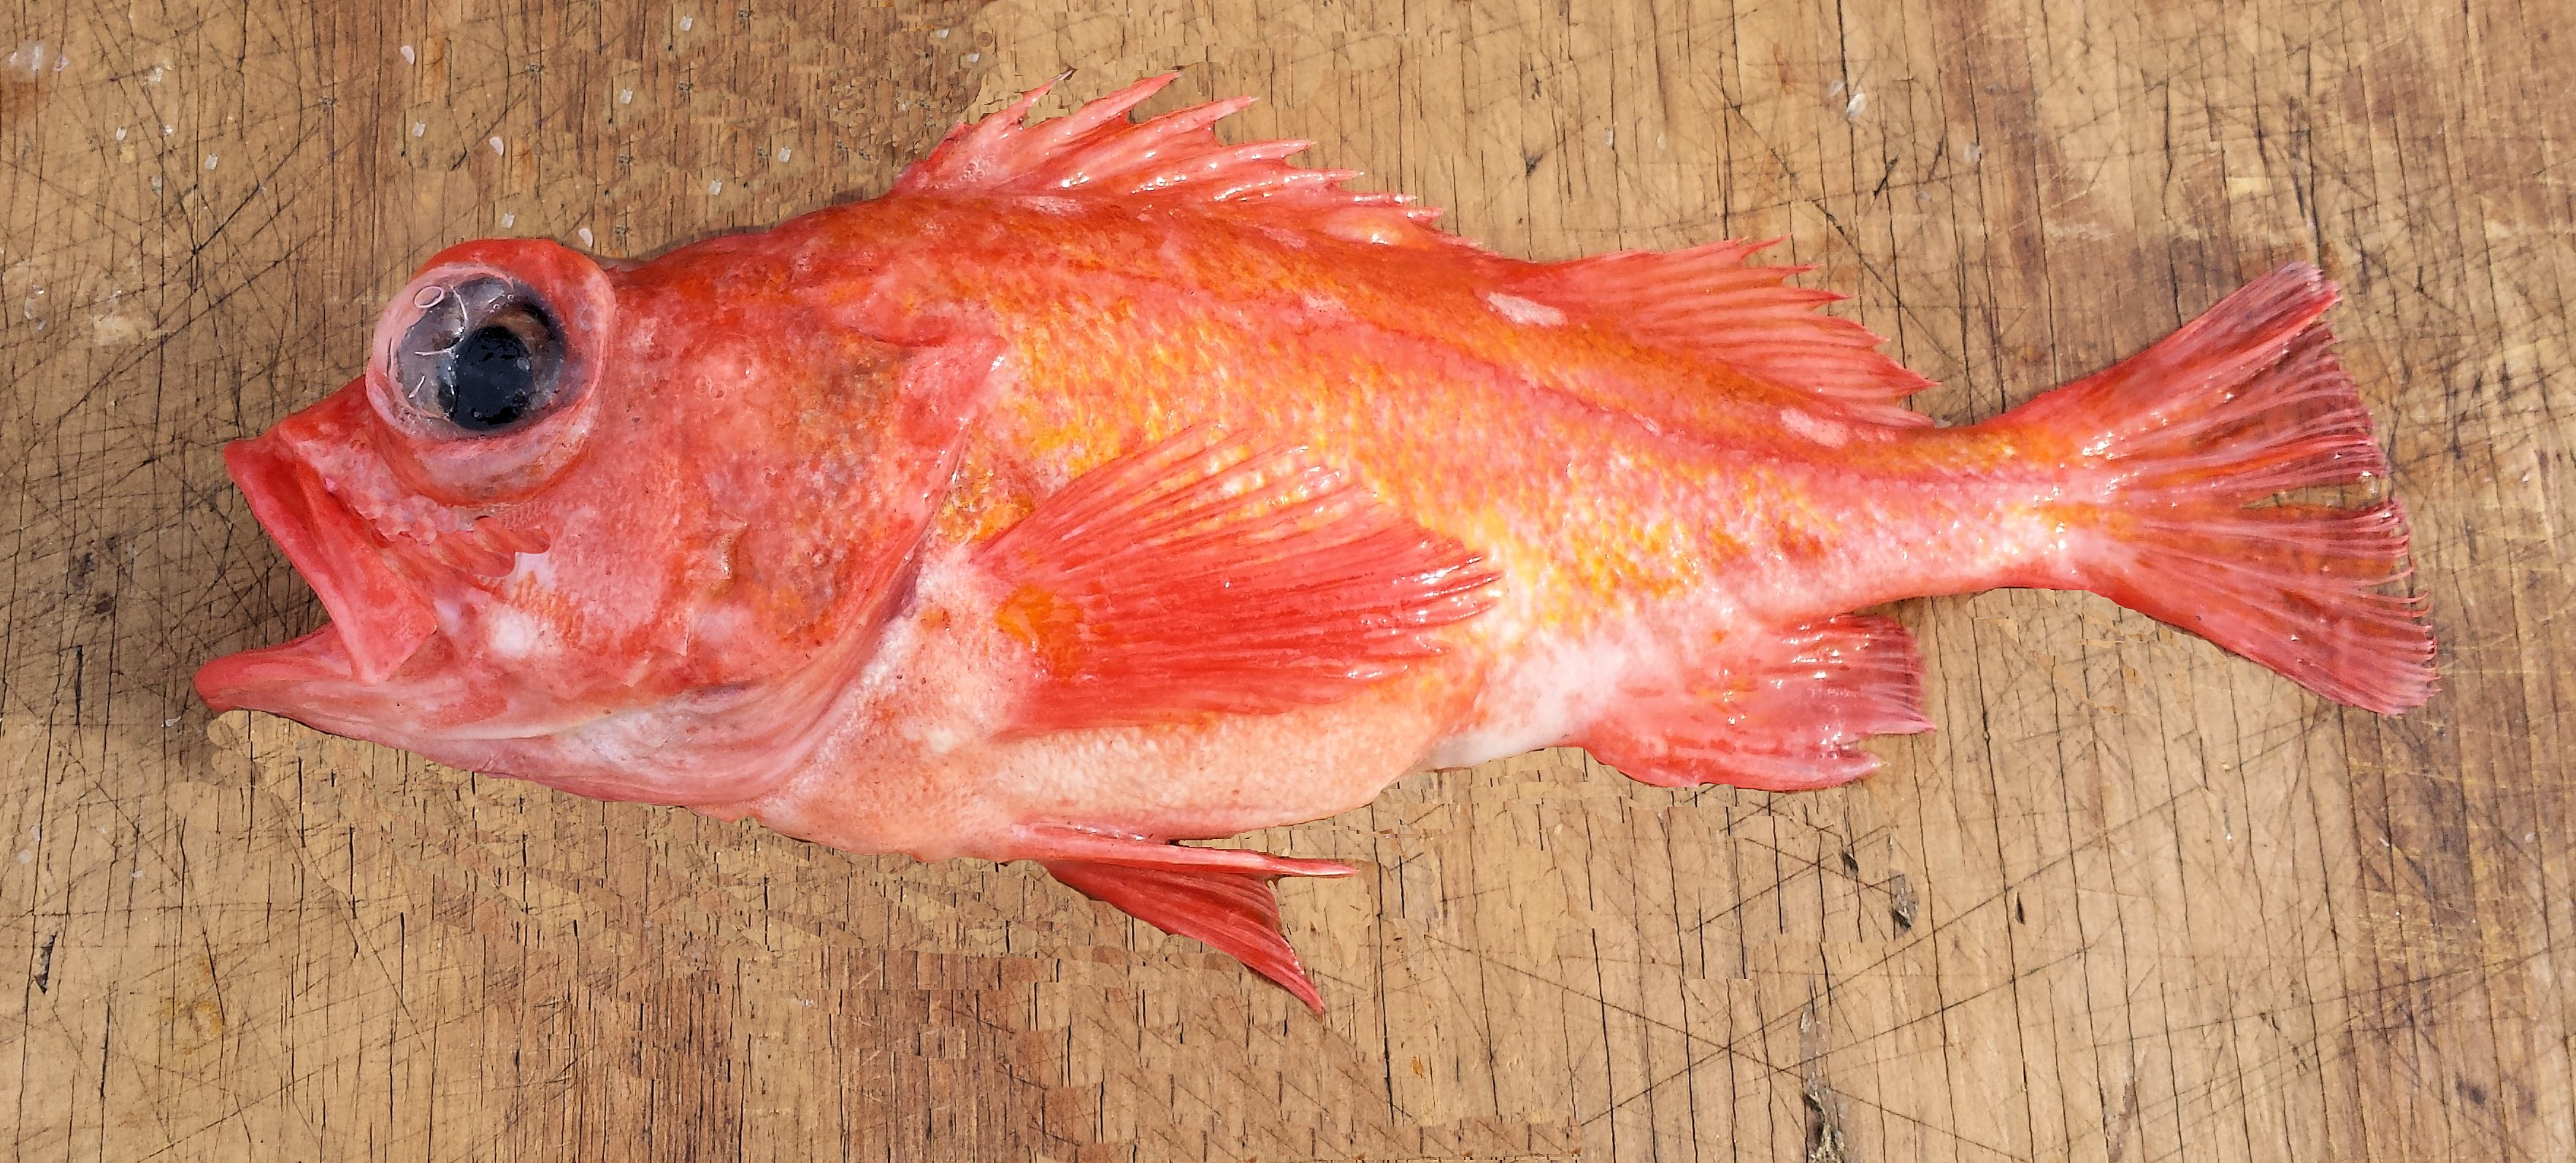 Pinkrose Rockfish | Mexico – Fish, Marine Life, Birds and ...